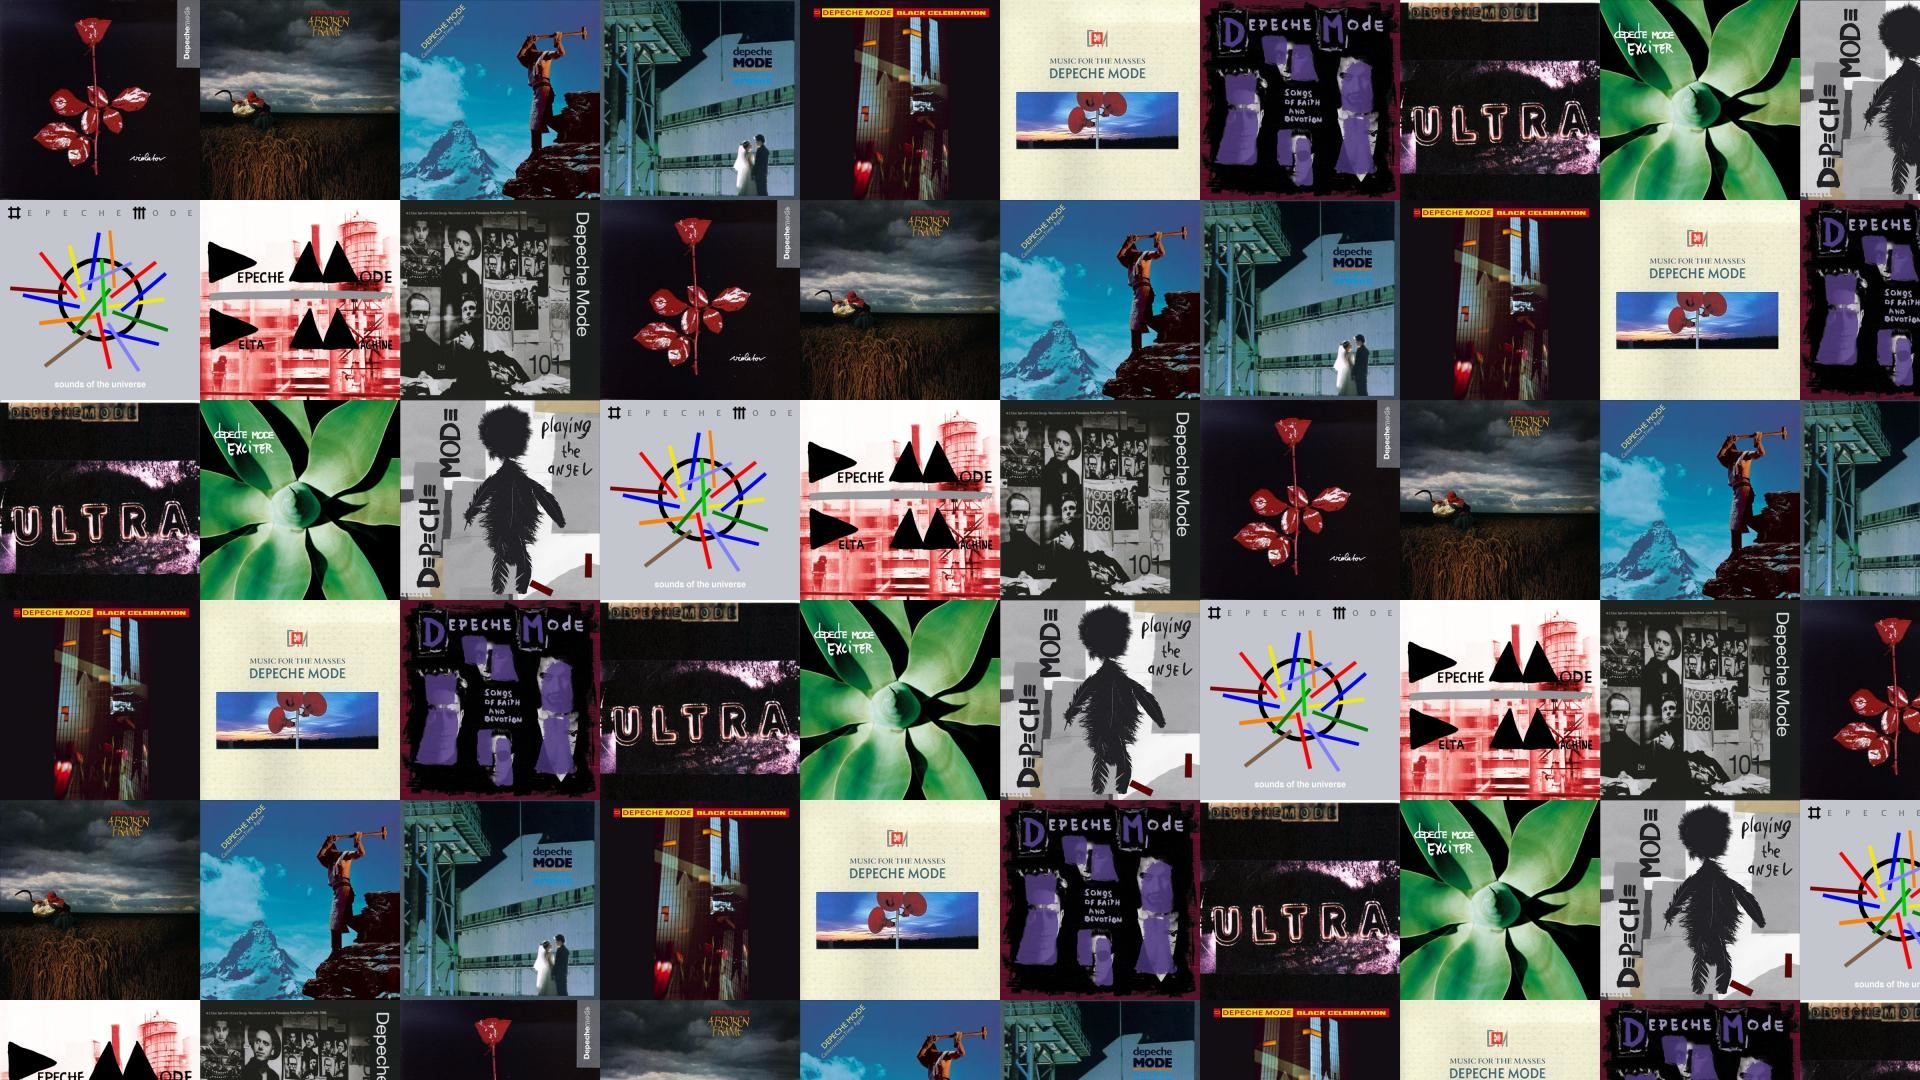 1920x1080 Depeche Mode Violator A Broken Frame Construction Time Wallpaper Â« Tiled  Desktop Wallpaper